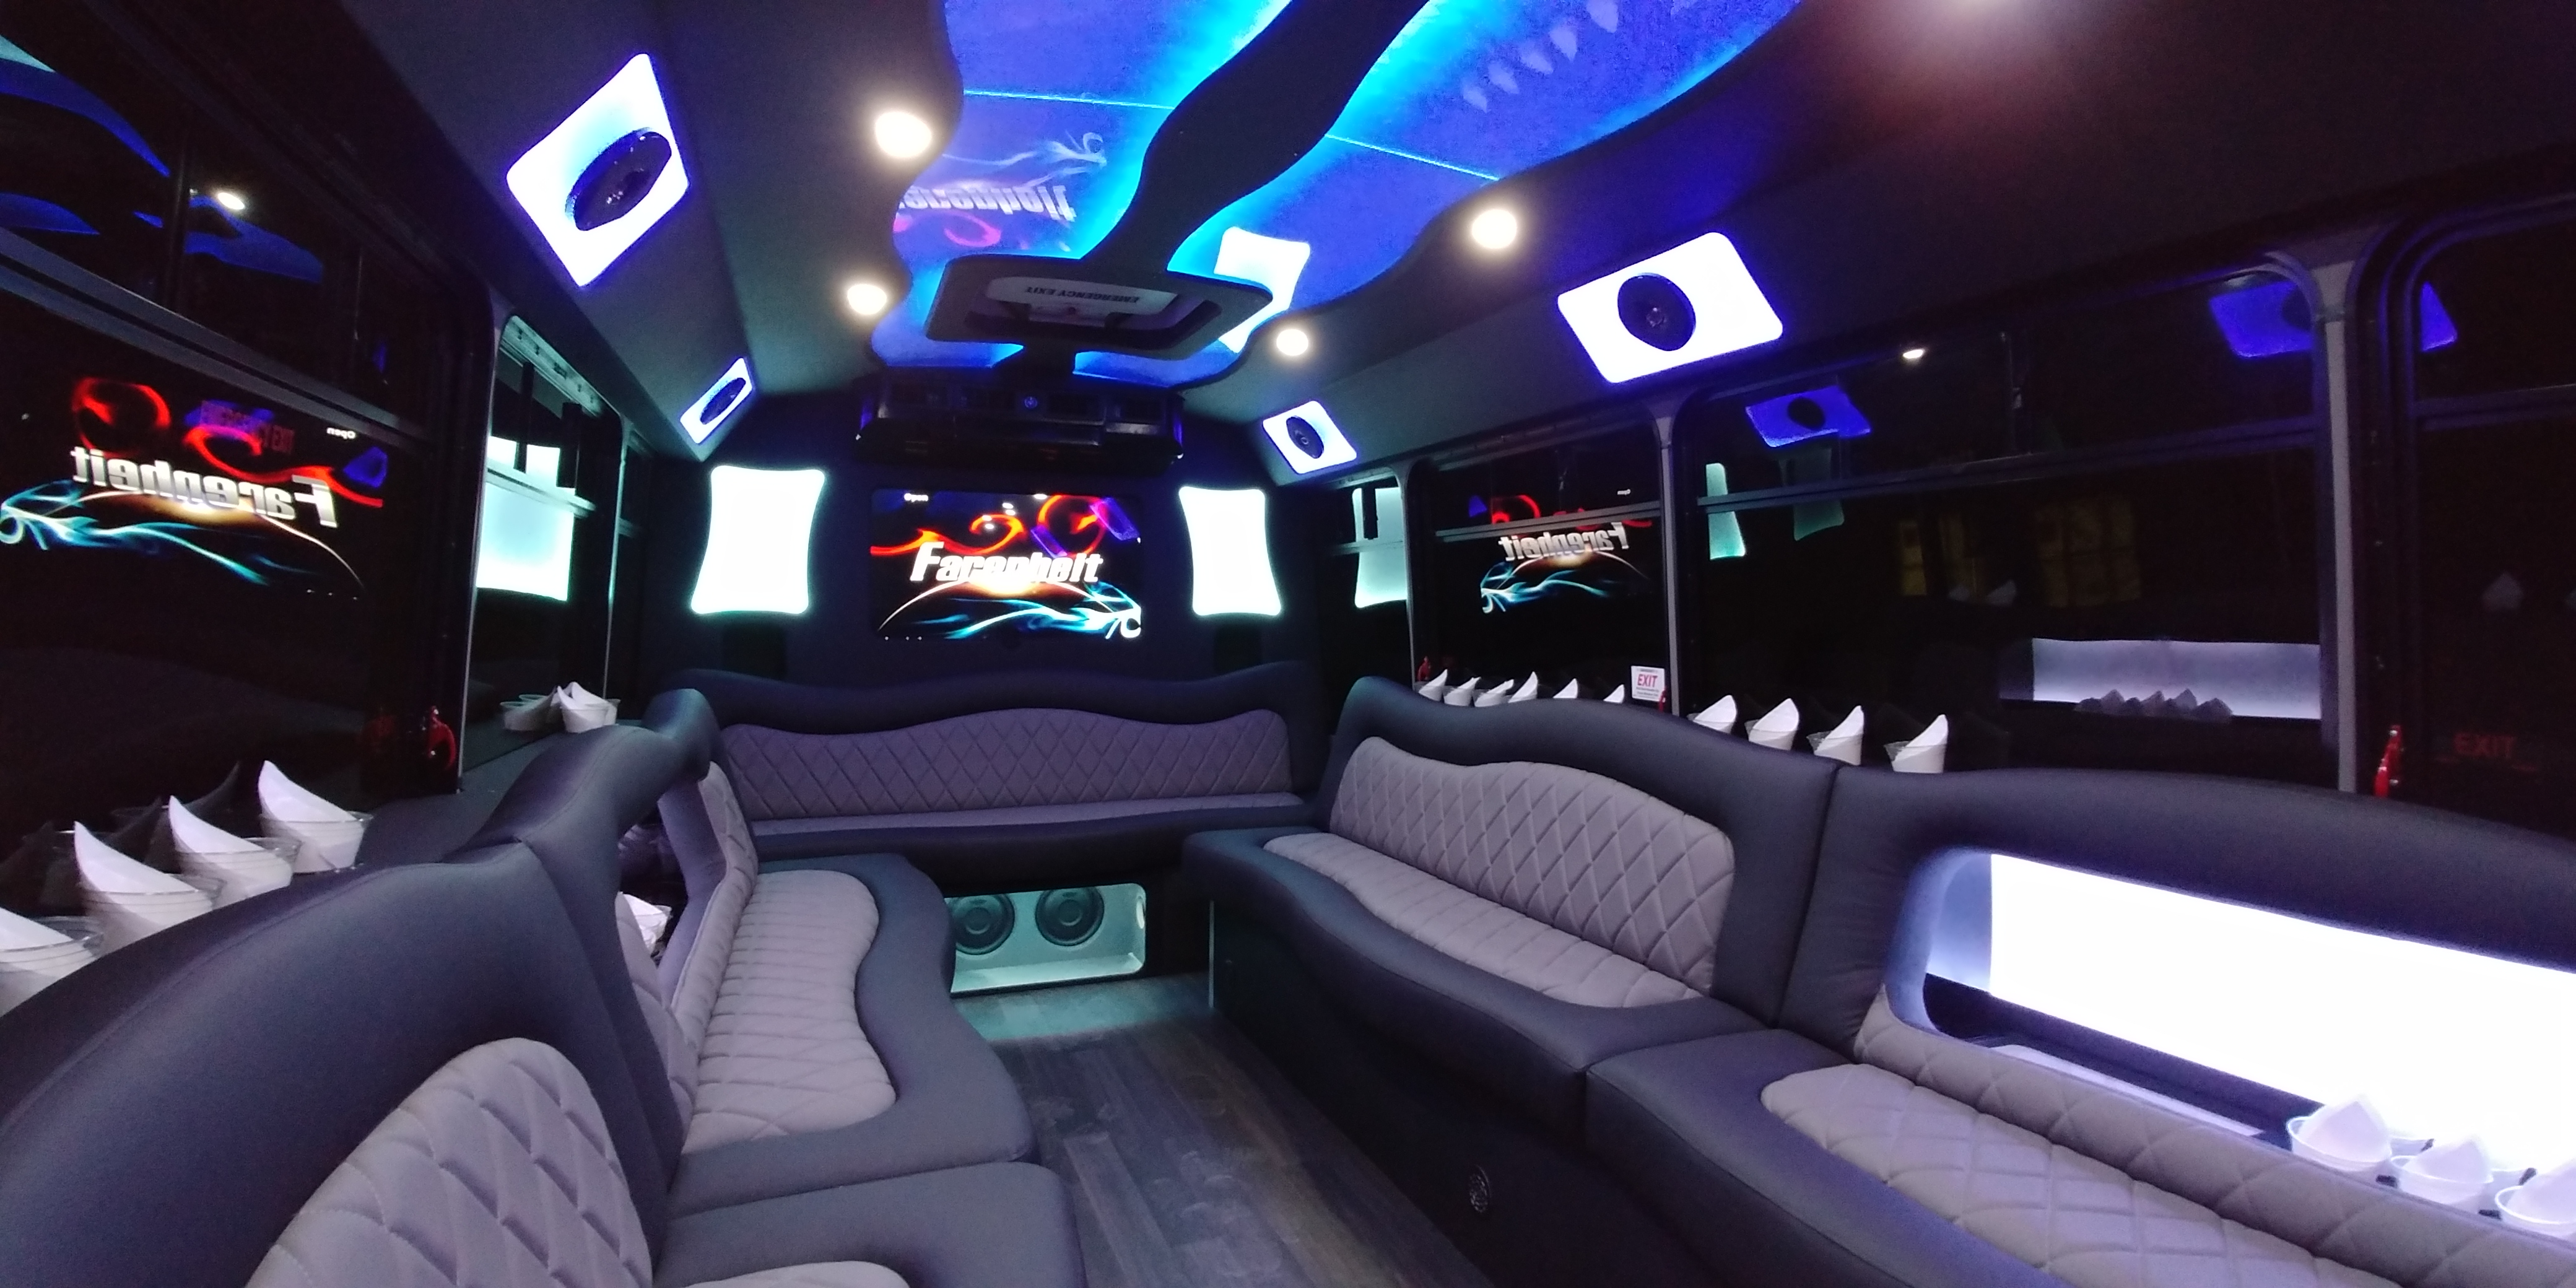 18 Passenger Luxury Limo Bus Nighttime Interior 2